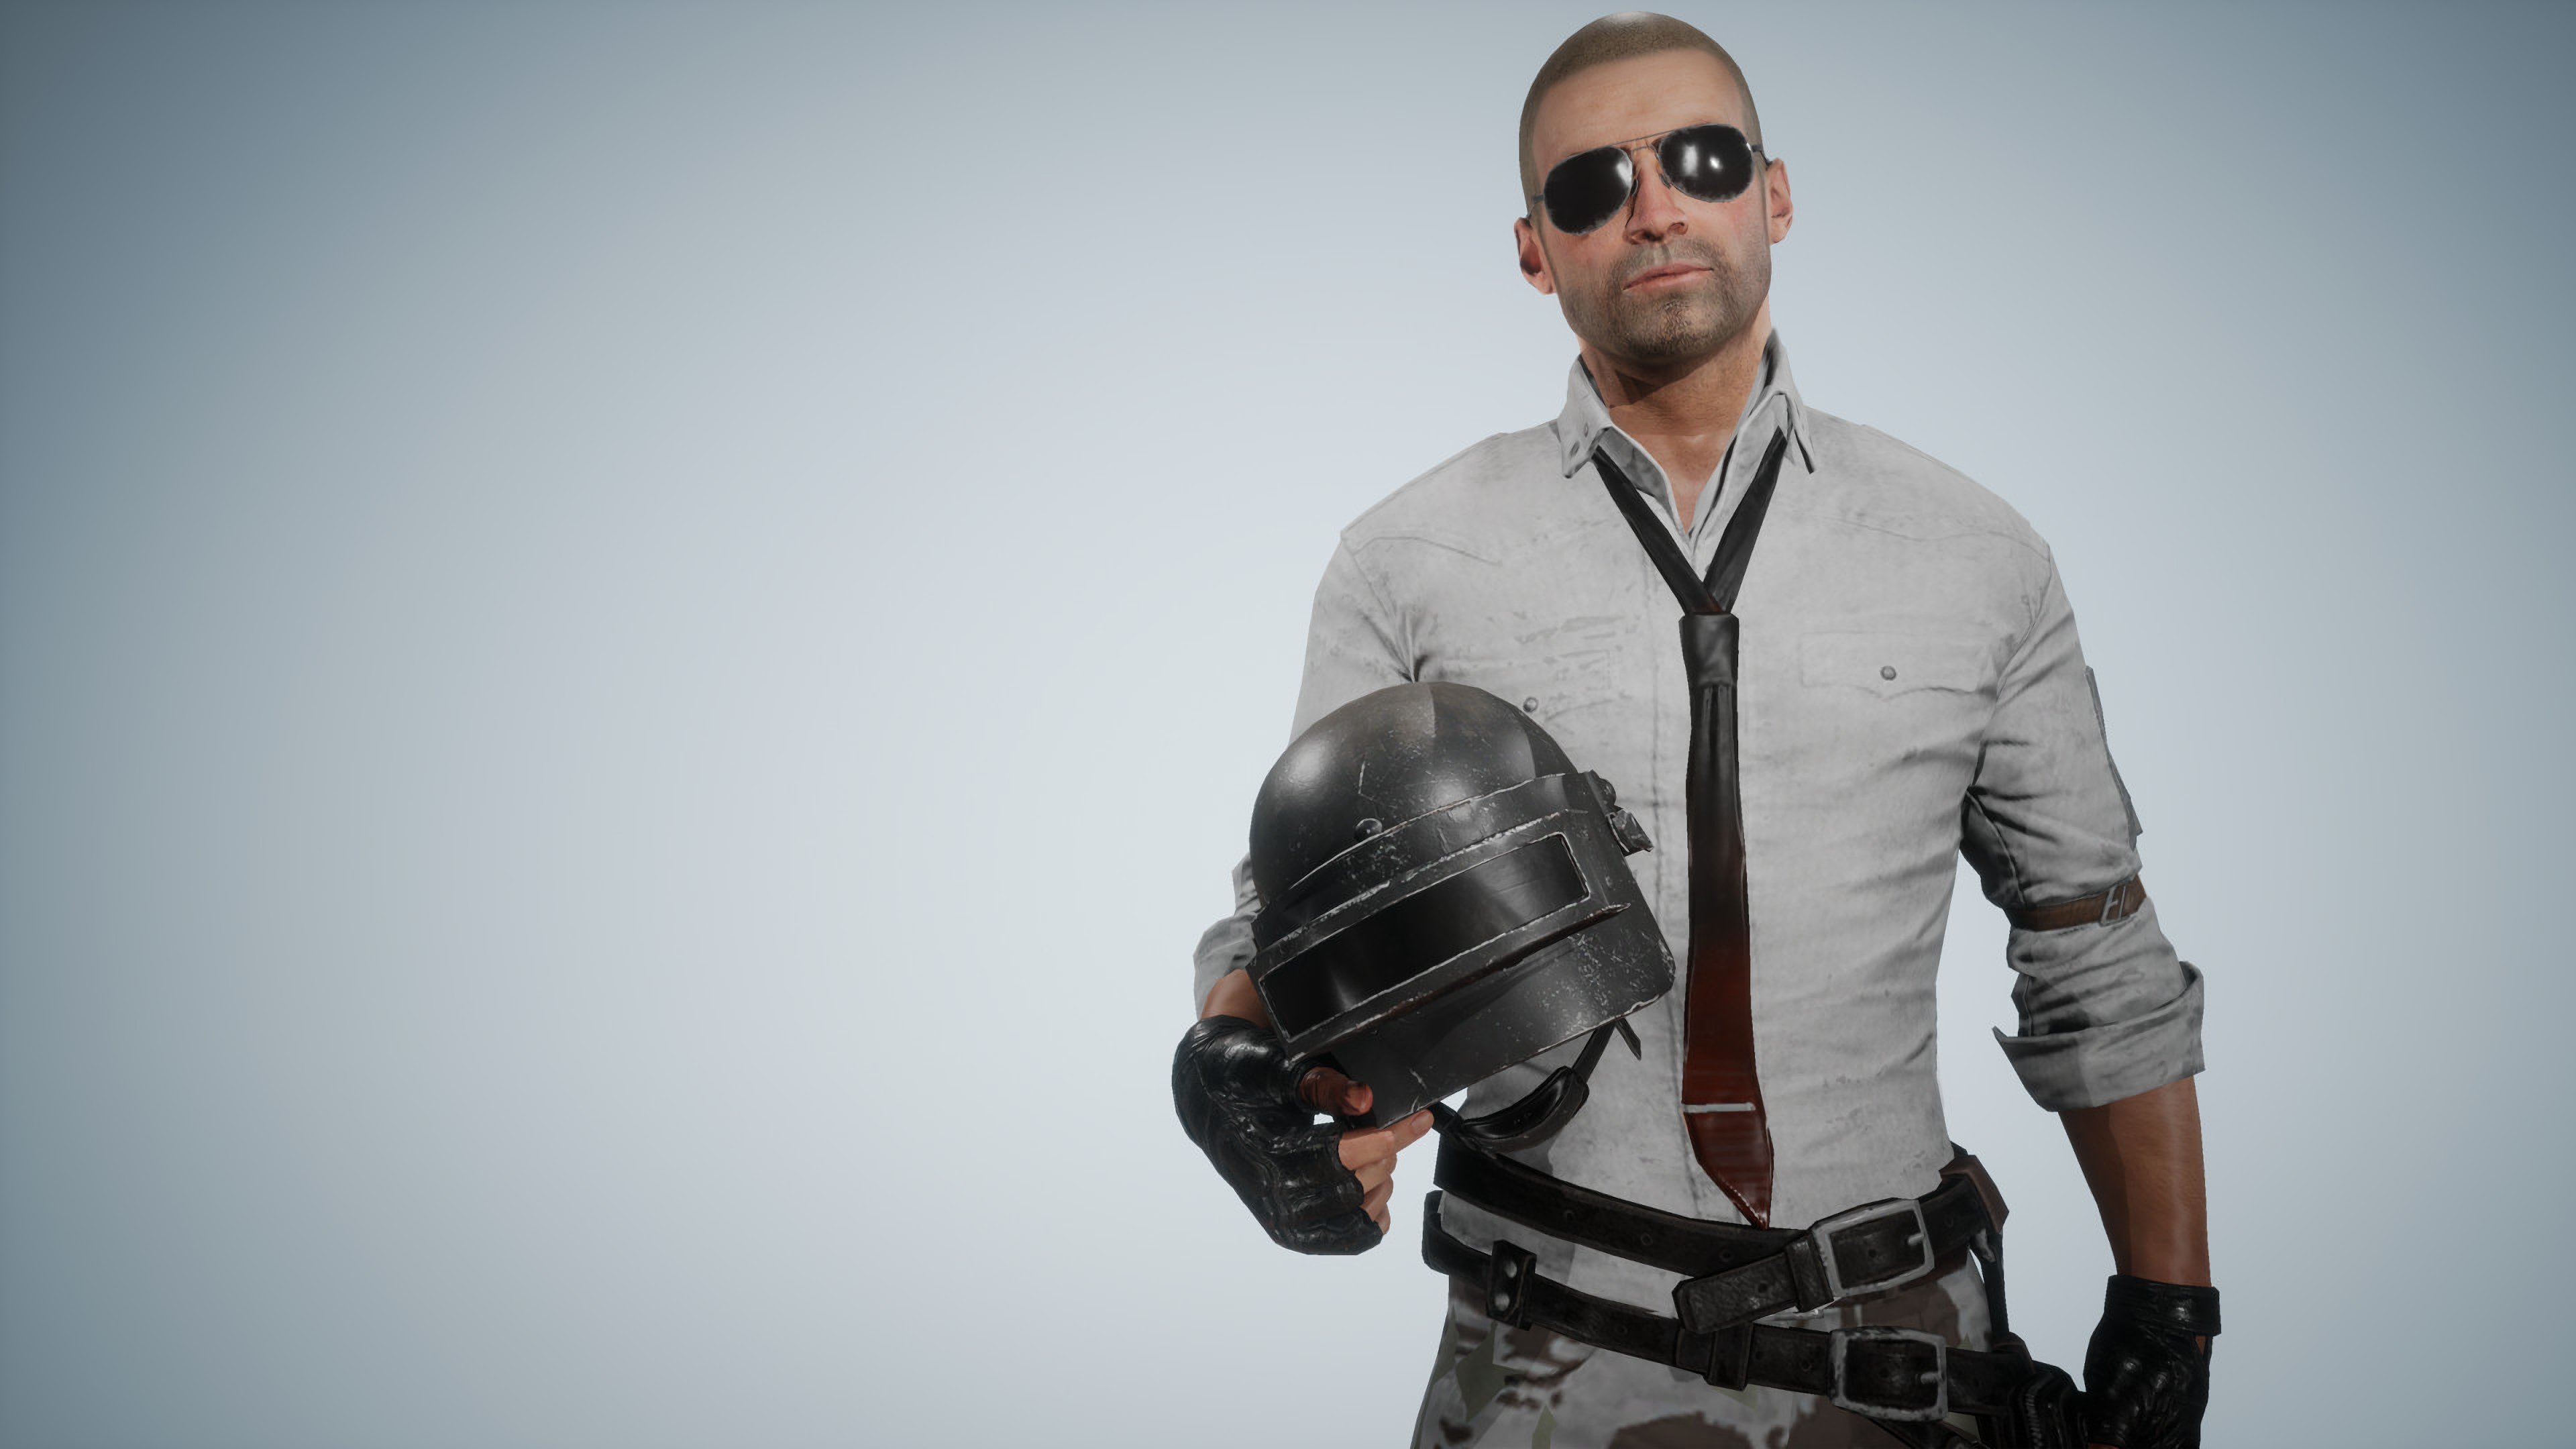 pubg helmet guy without helmet 1538343996 - Pubg Helmet Guy Without Helmet - pubg wallpapers, playerunknowns battlegrounds wallpapers, helmet wallpapers, hd-wallpapers, games wallpapers, 4k-wallpapers, 2018 games wallpapers